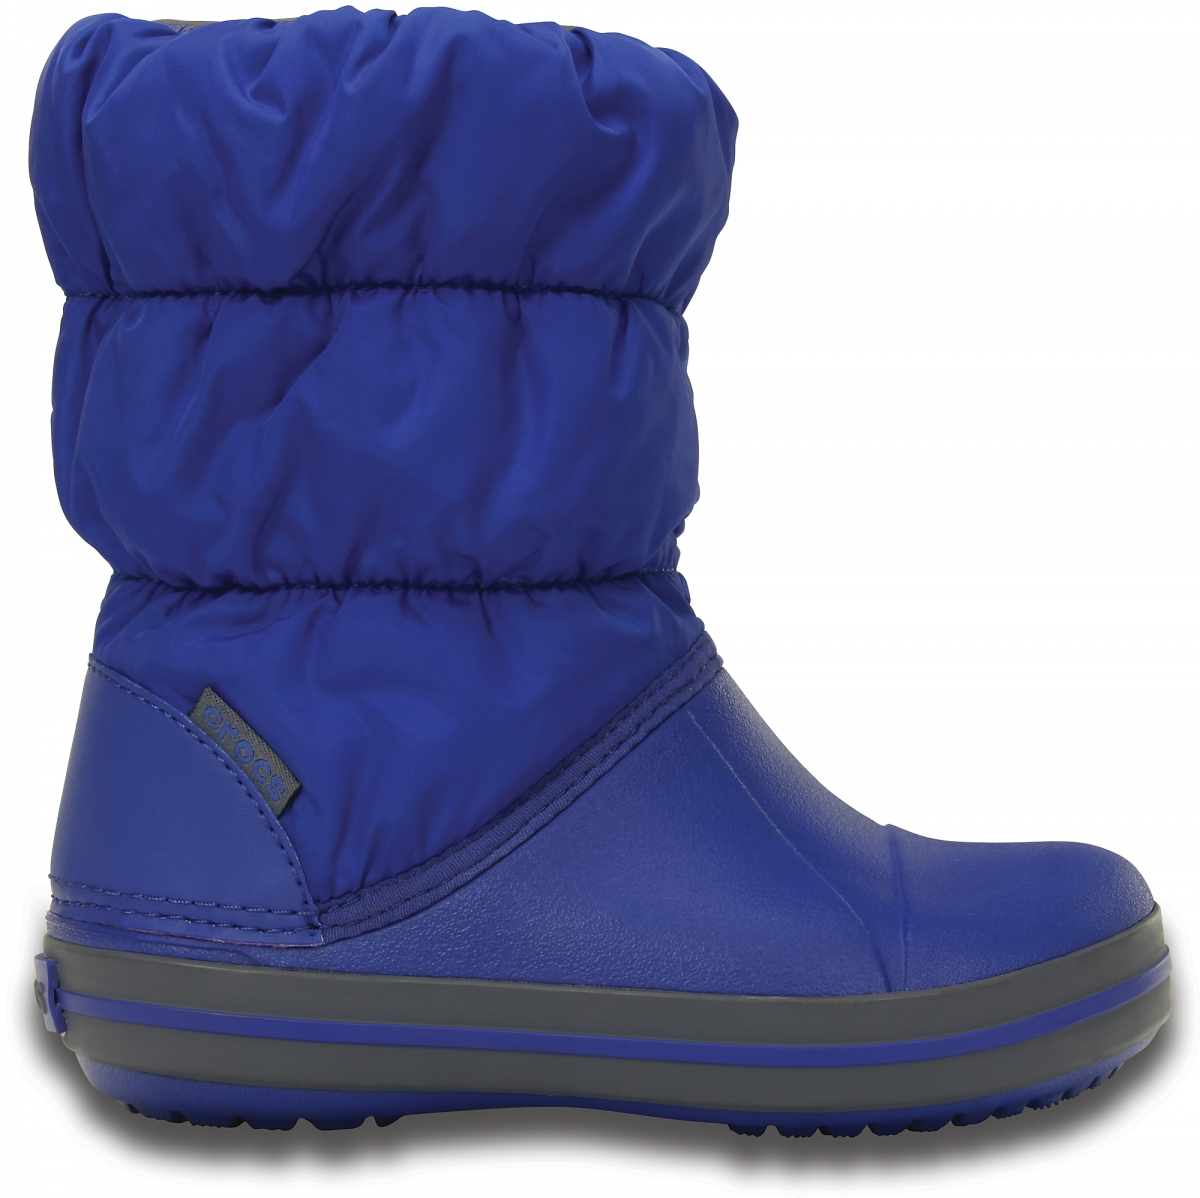 Crocs Winter Puff Boot Kids - Cerulean Blue/Light Grey, J2 (33-34)